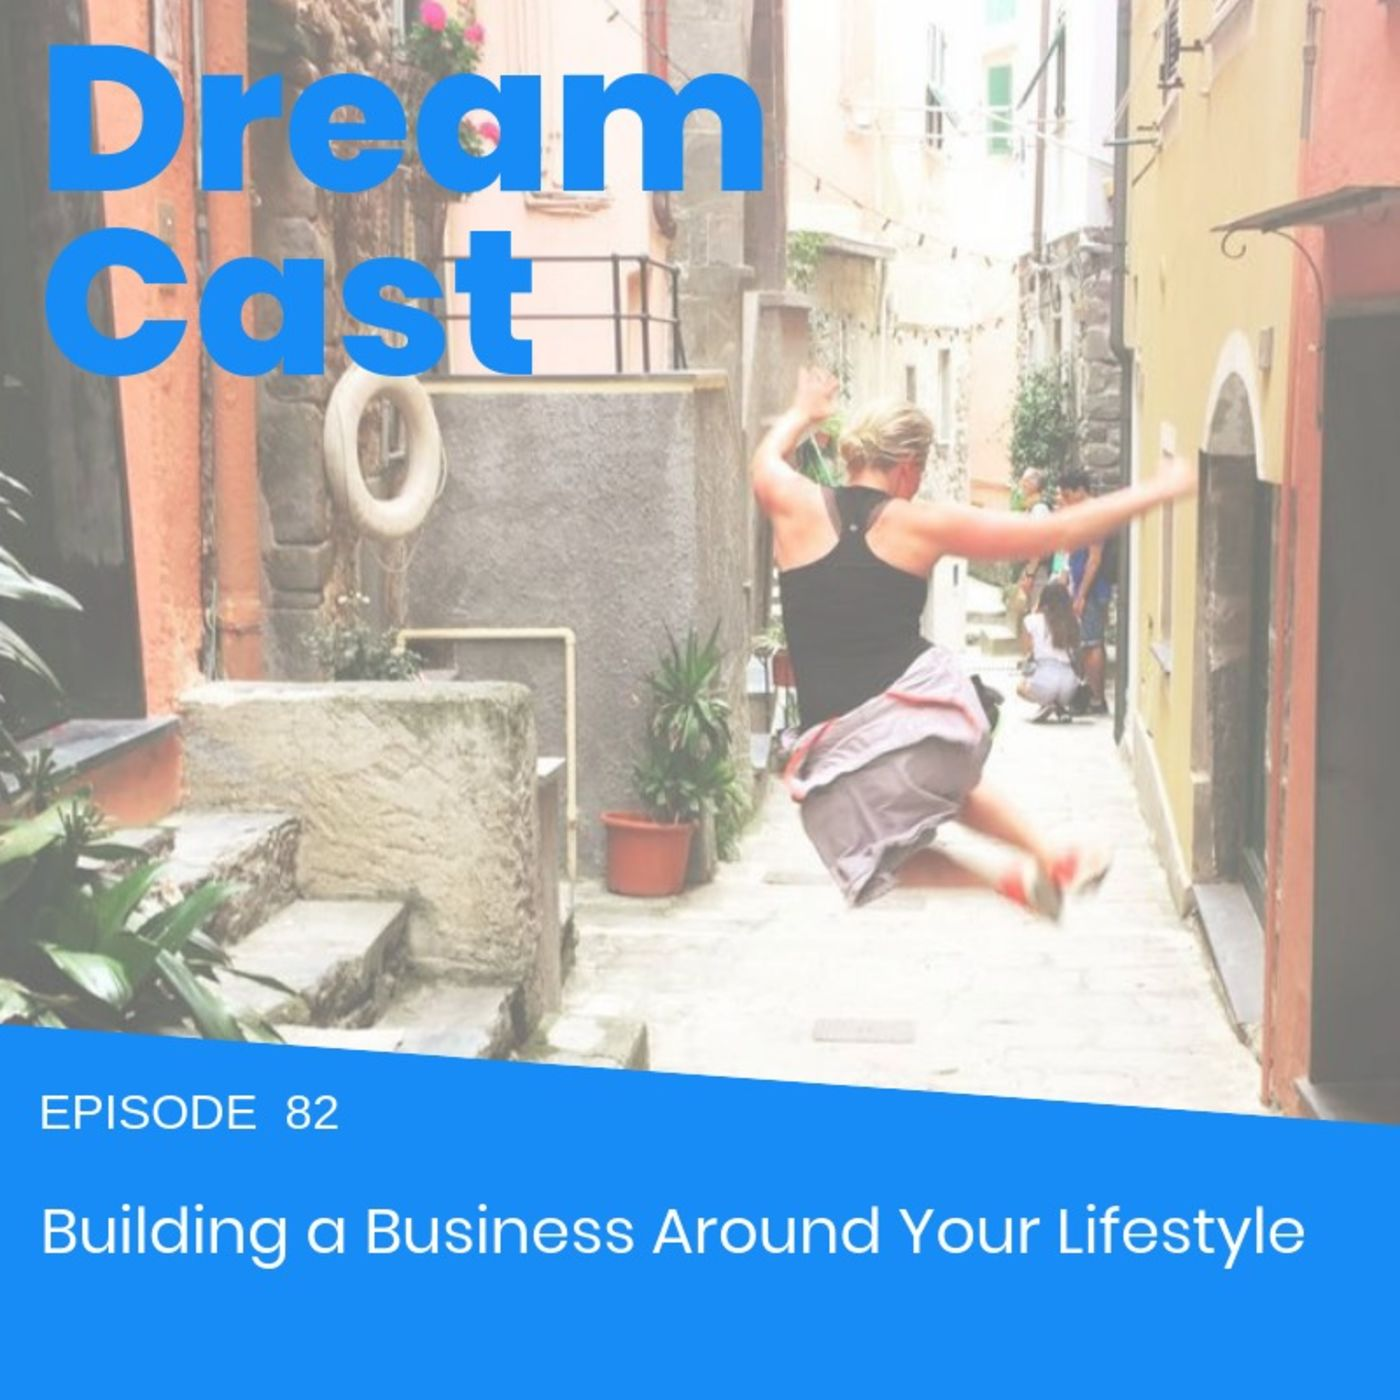 Episode 82 - Building a Business Around Your Lifestyle